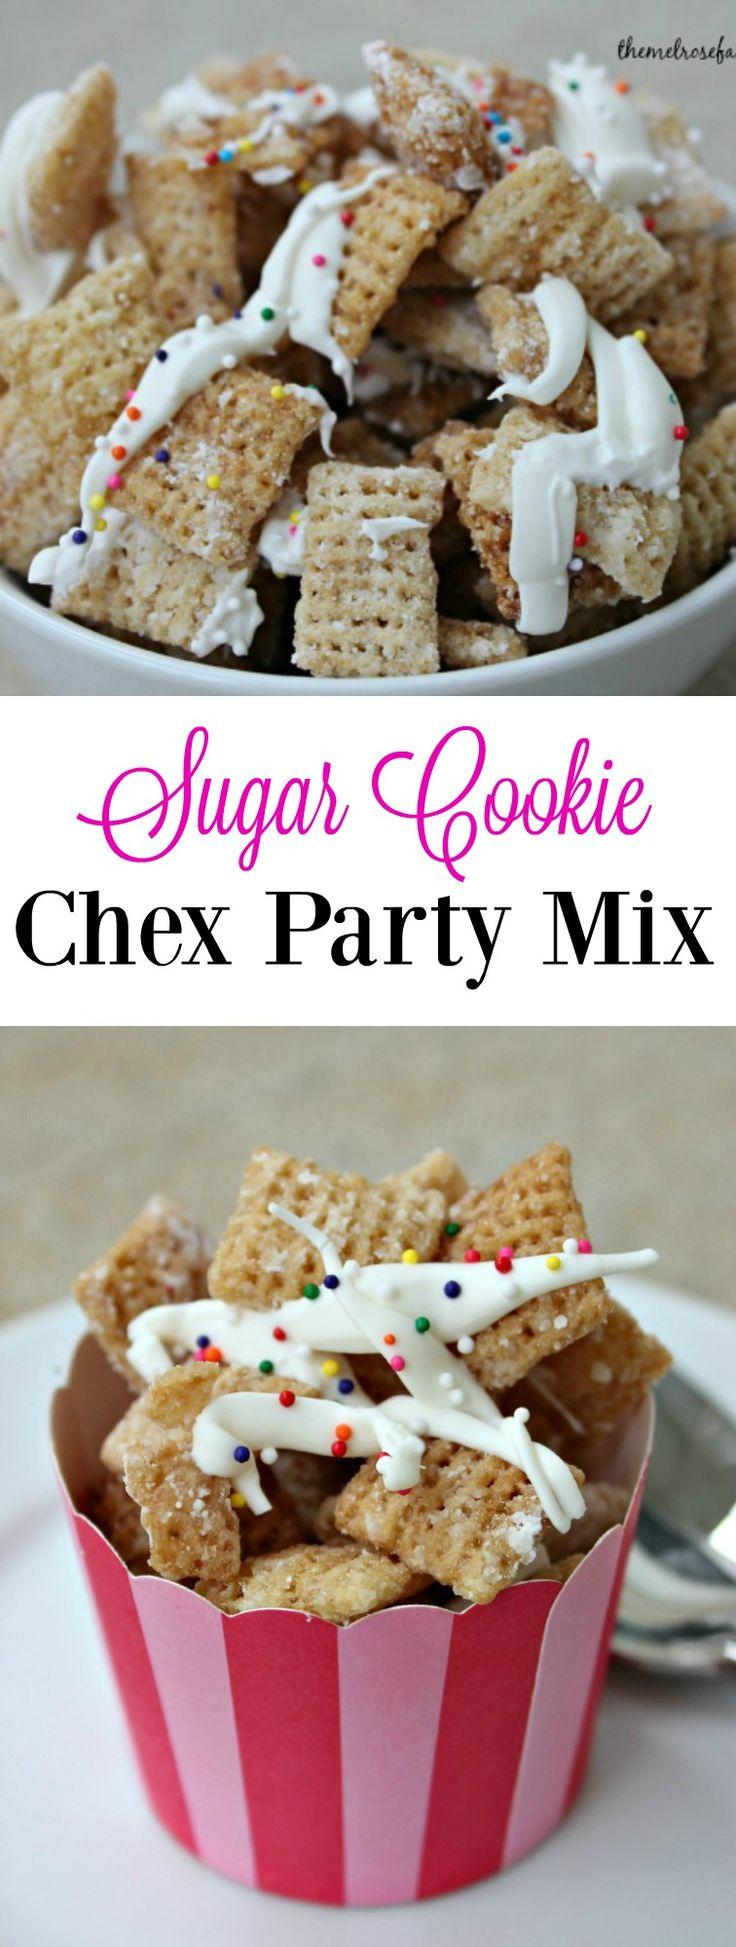 Chex mix on pinterest puppy chow muddy buddies recipe and chex mix